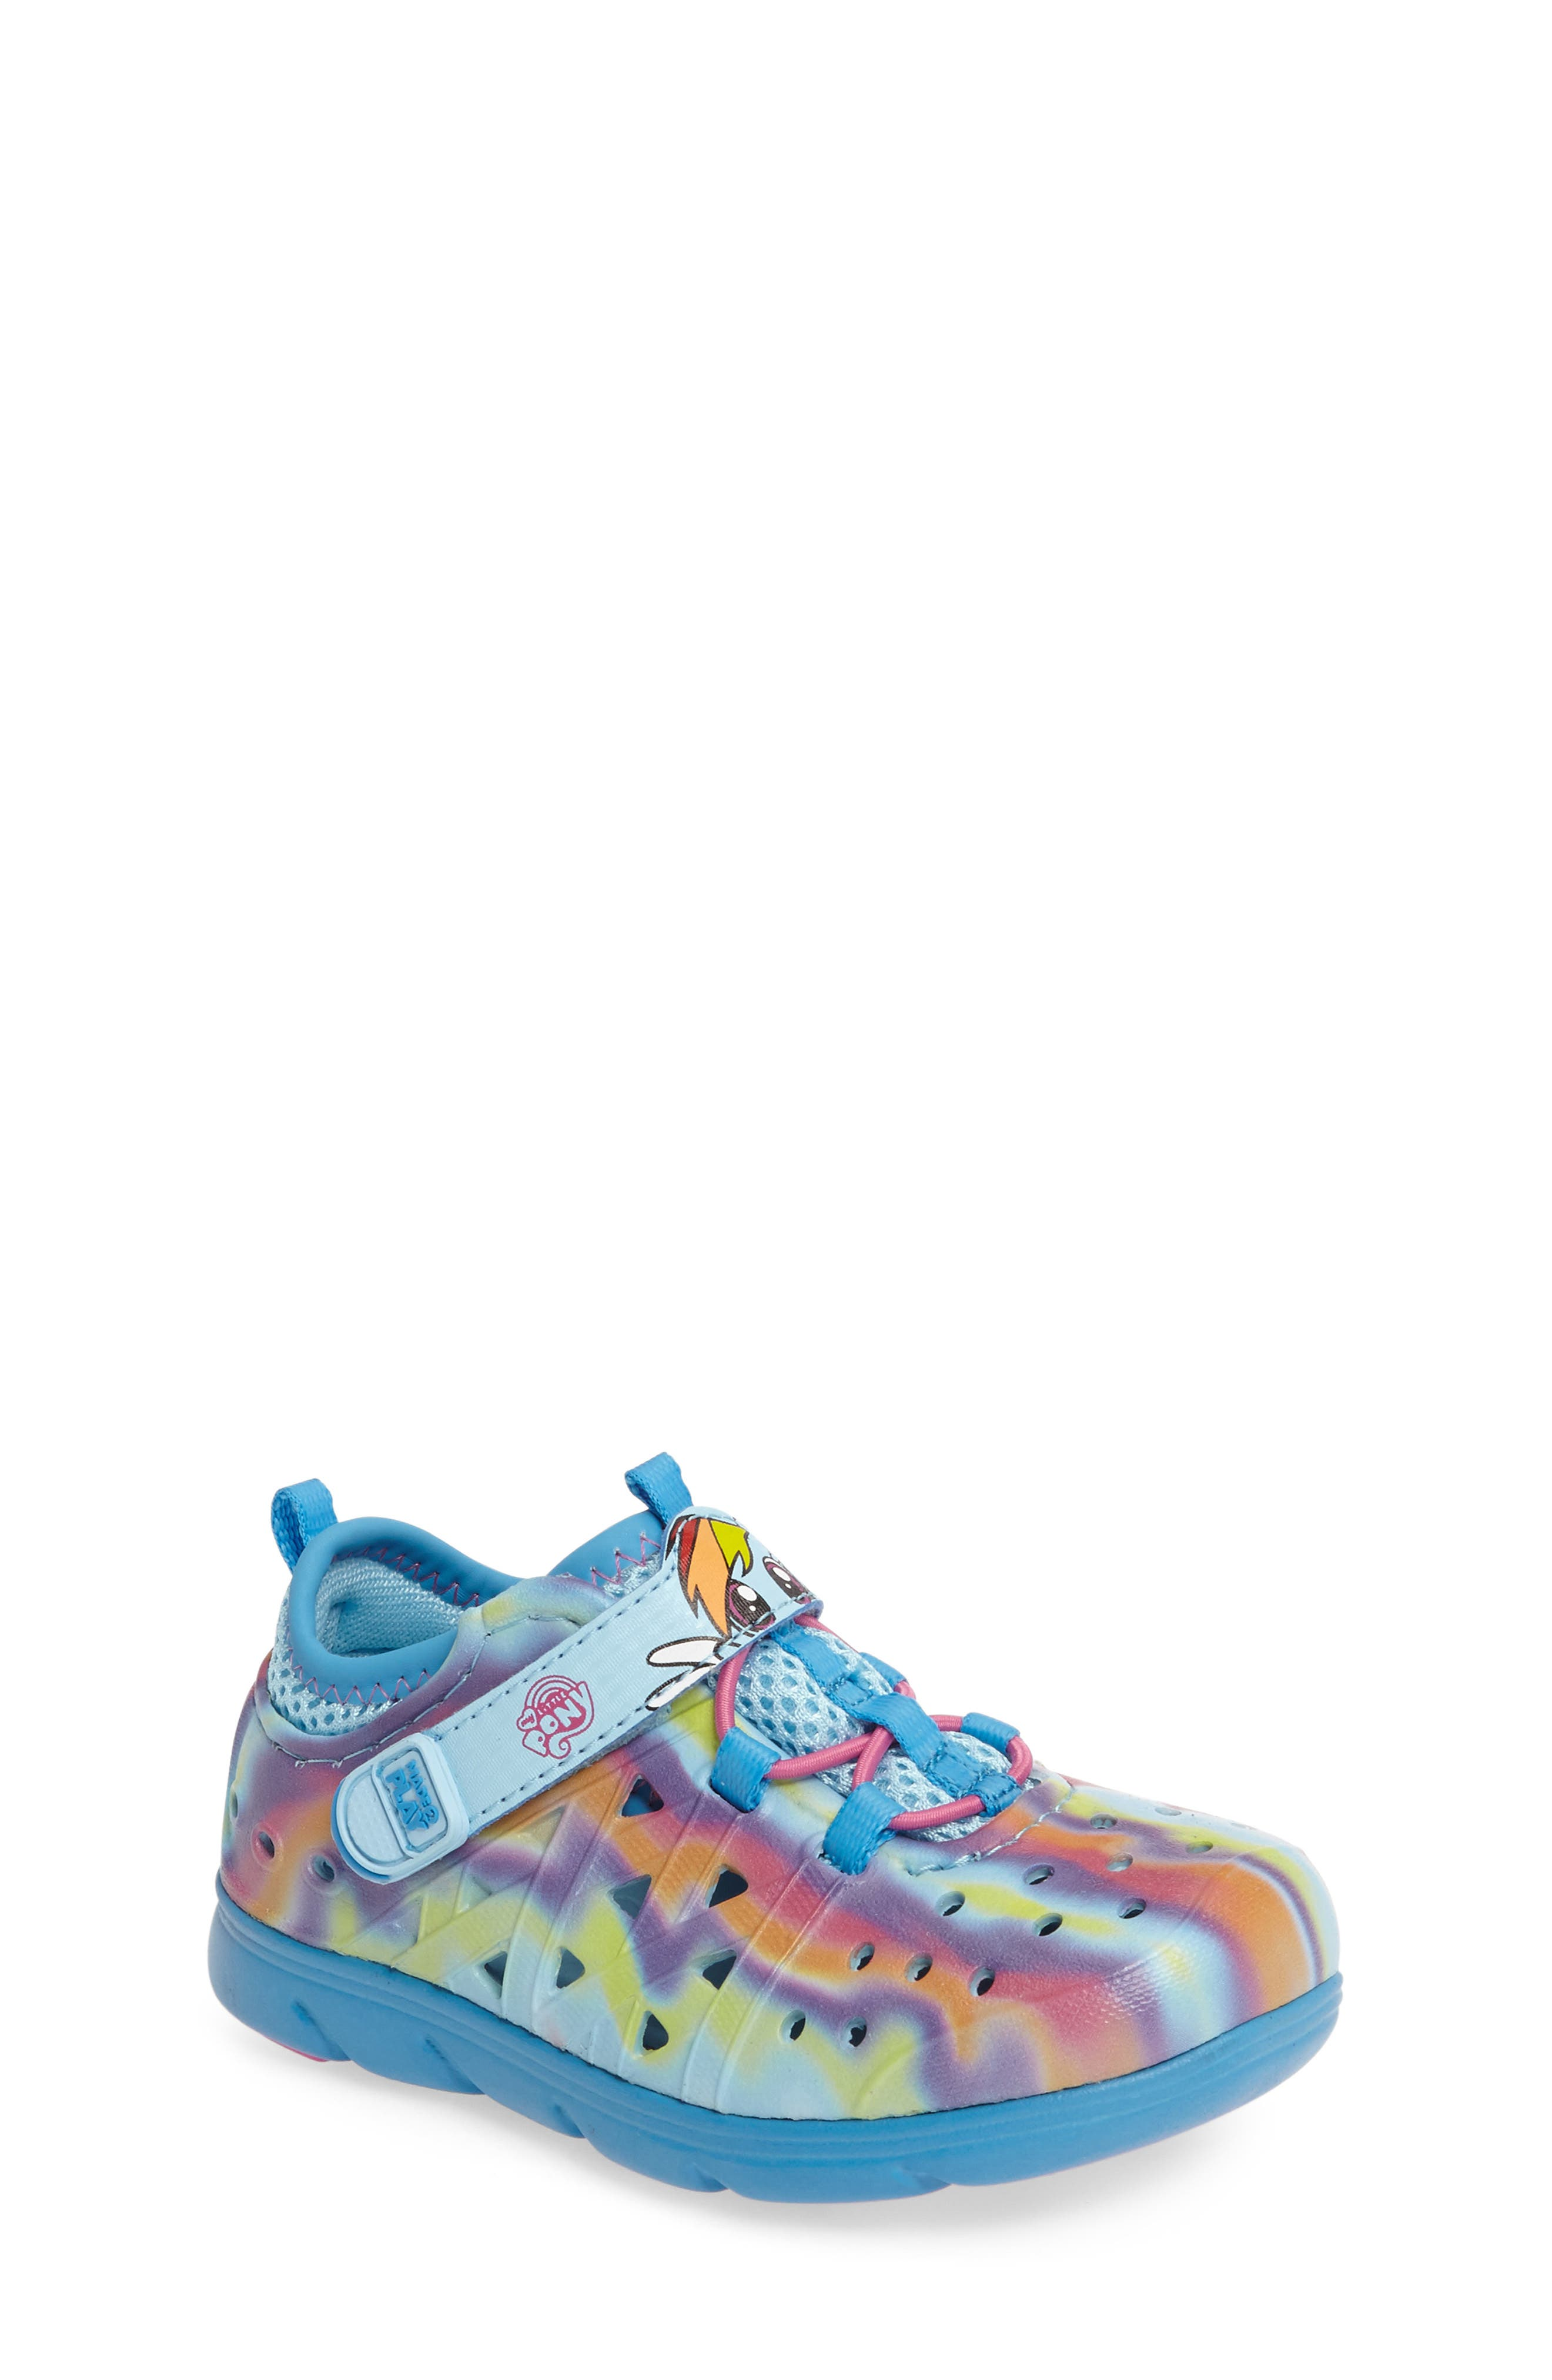 Made2Play<sup>®</sup> My Little Pony<sup>™</sup> Phibian Sneaker,                             Main thumbnail 1, color,                             Rainbow Turquoise